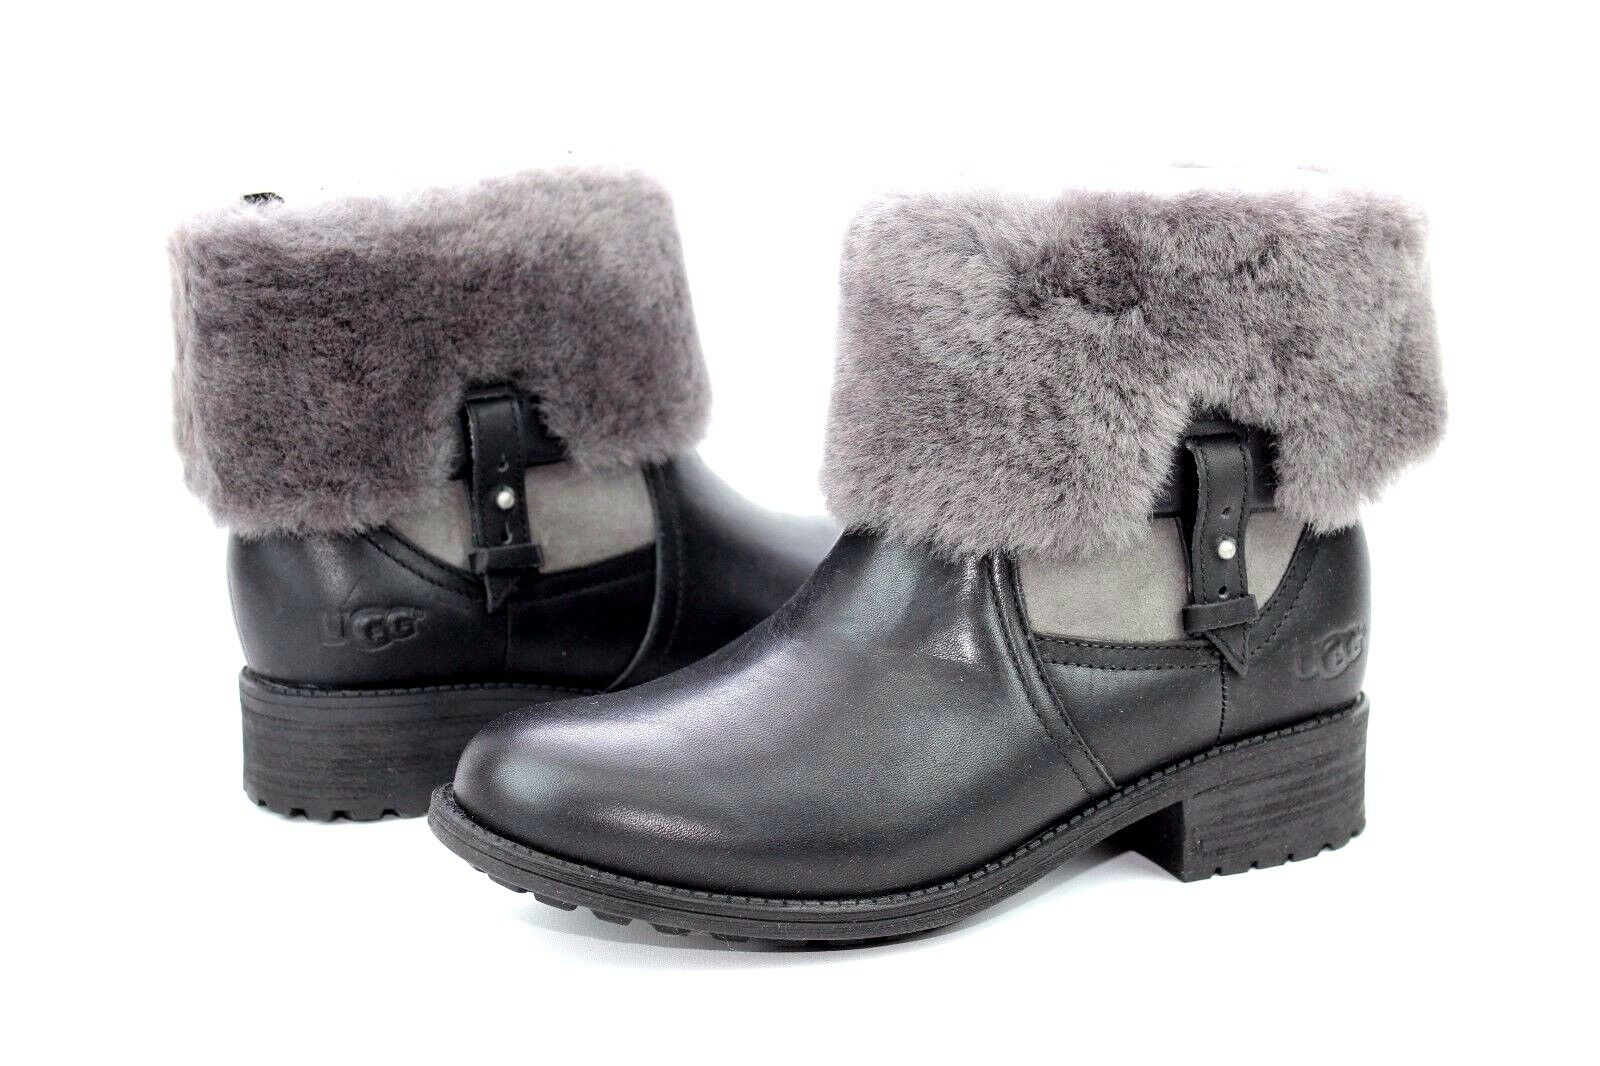 50a865e0fc09 UGG Chyler Leather Cuffed Sheepskin Black Ankle BOOTS Size 7 US for ...